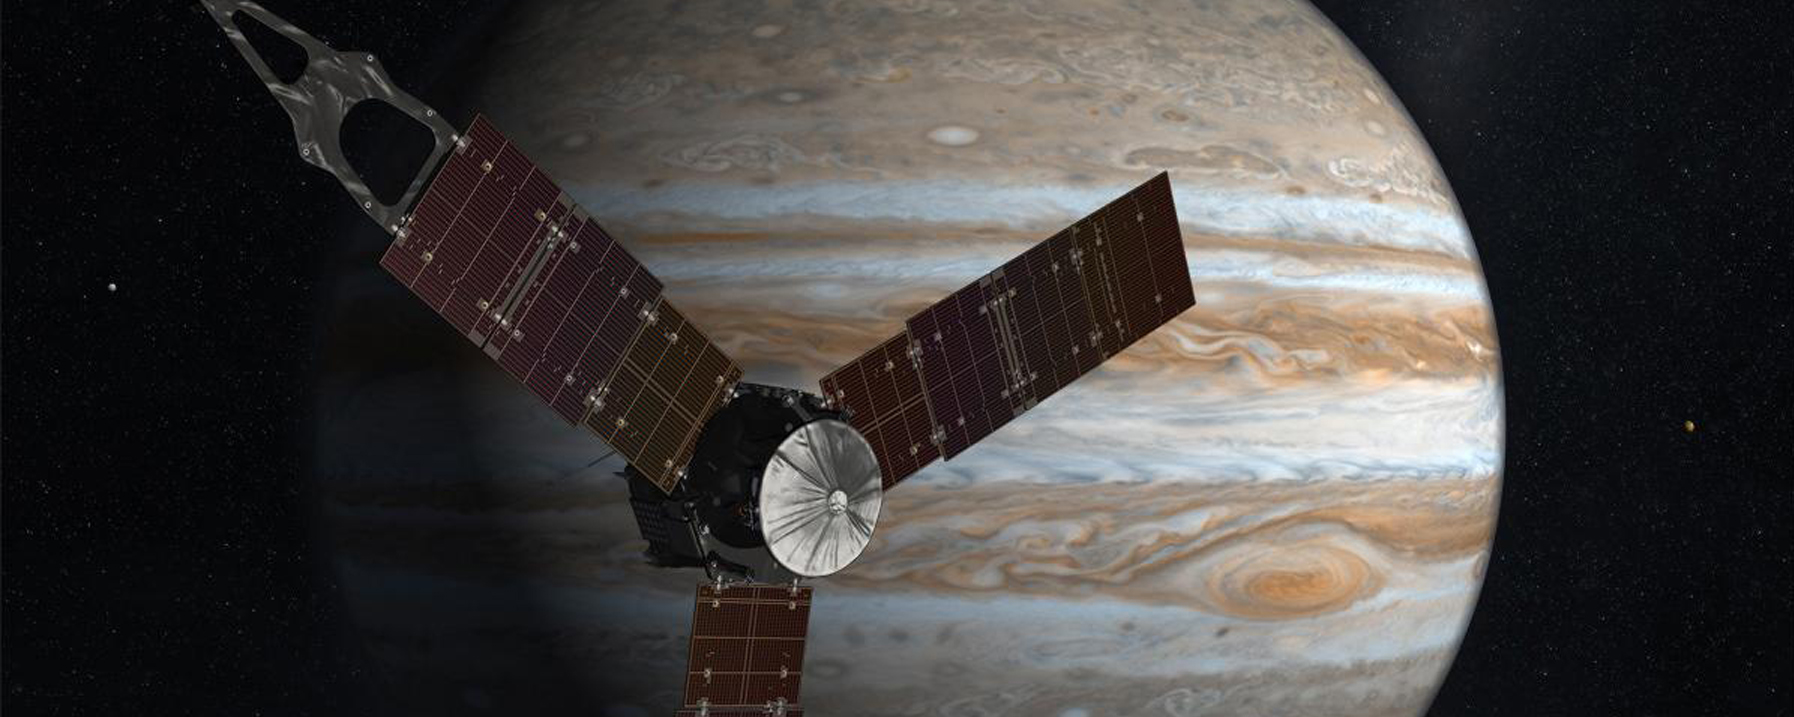 Artist interpretation of Juno orbiting Jupiter